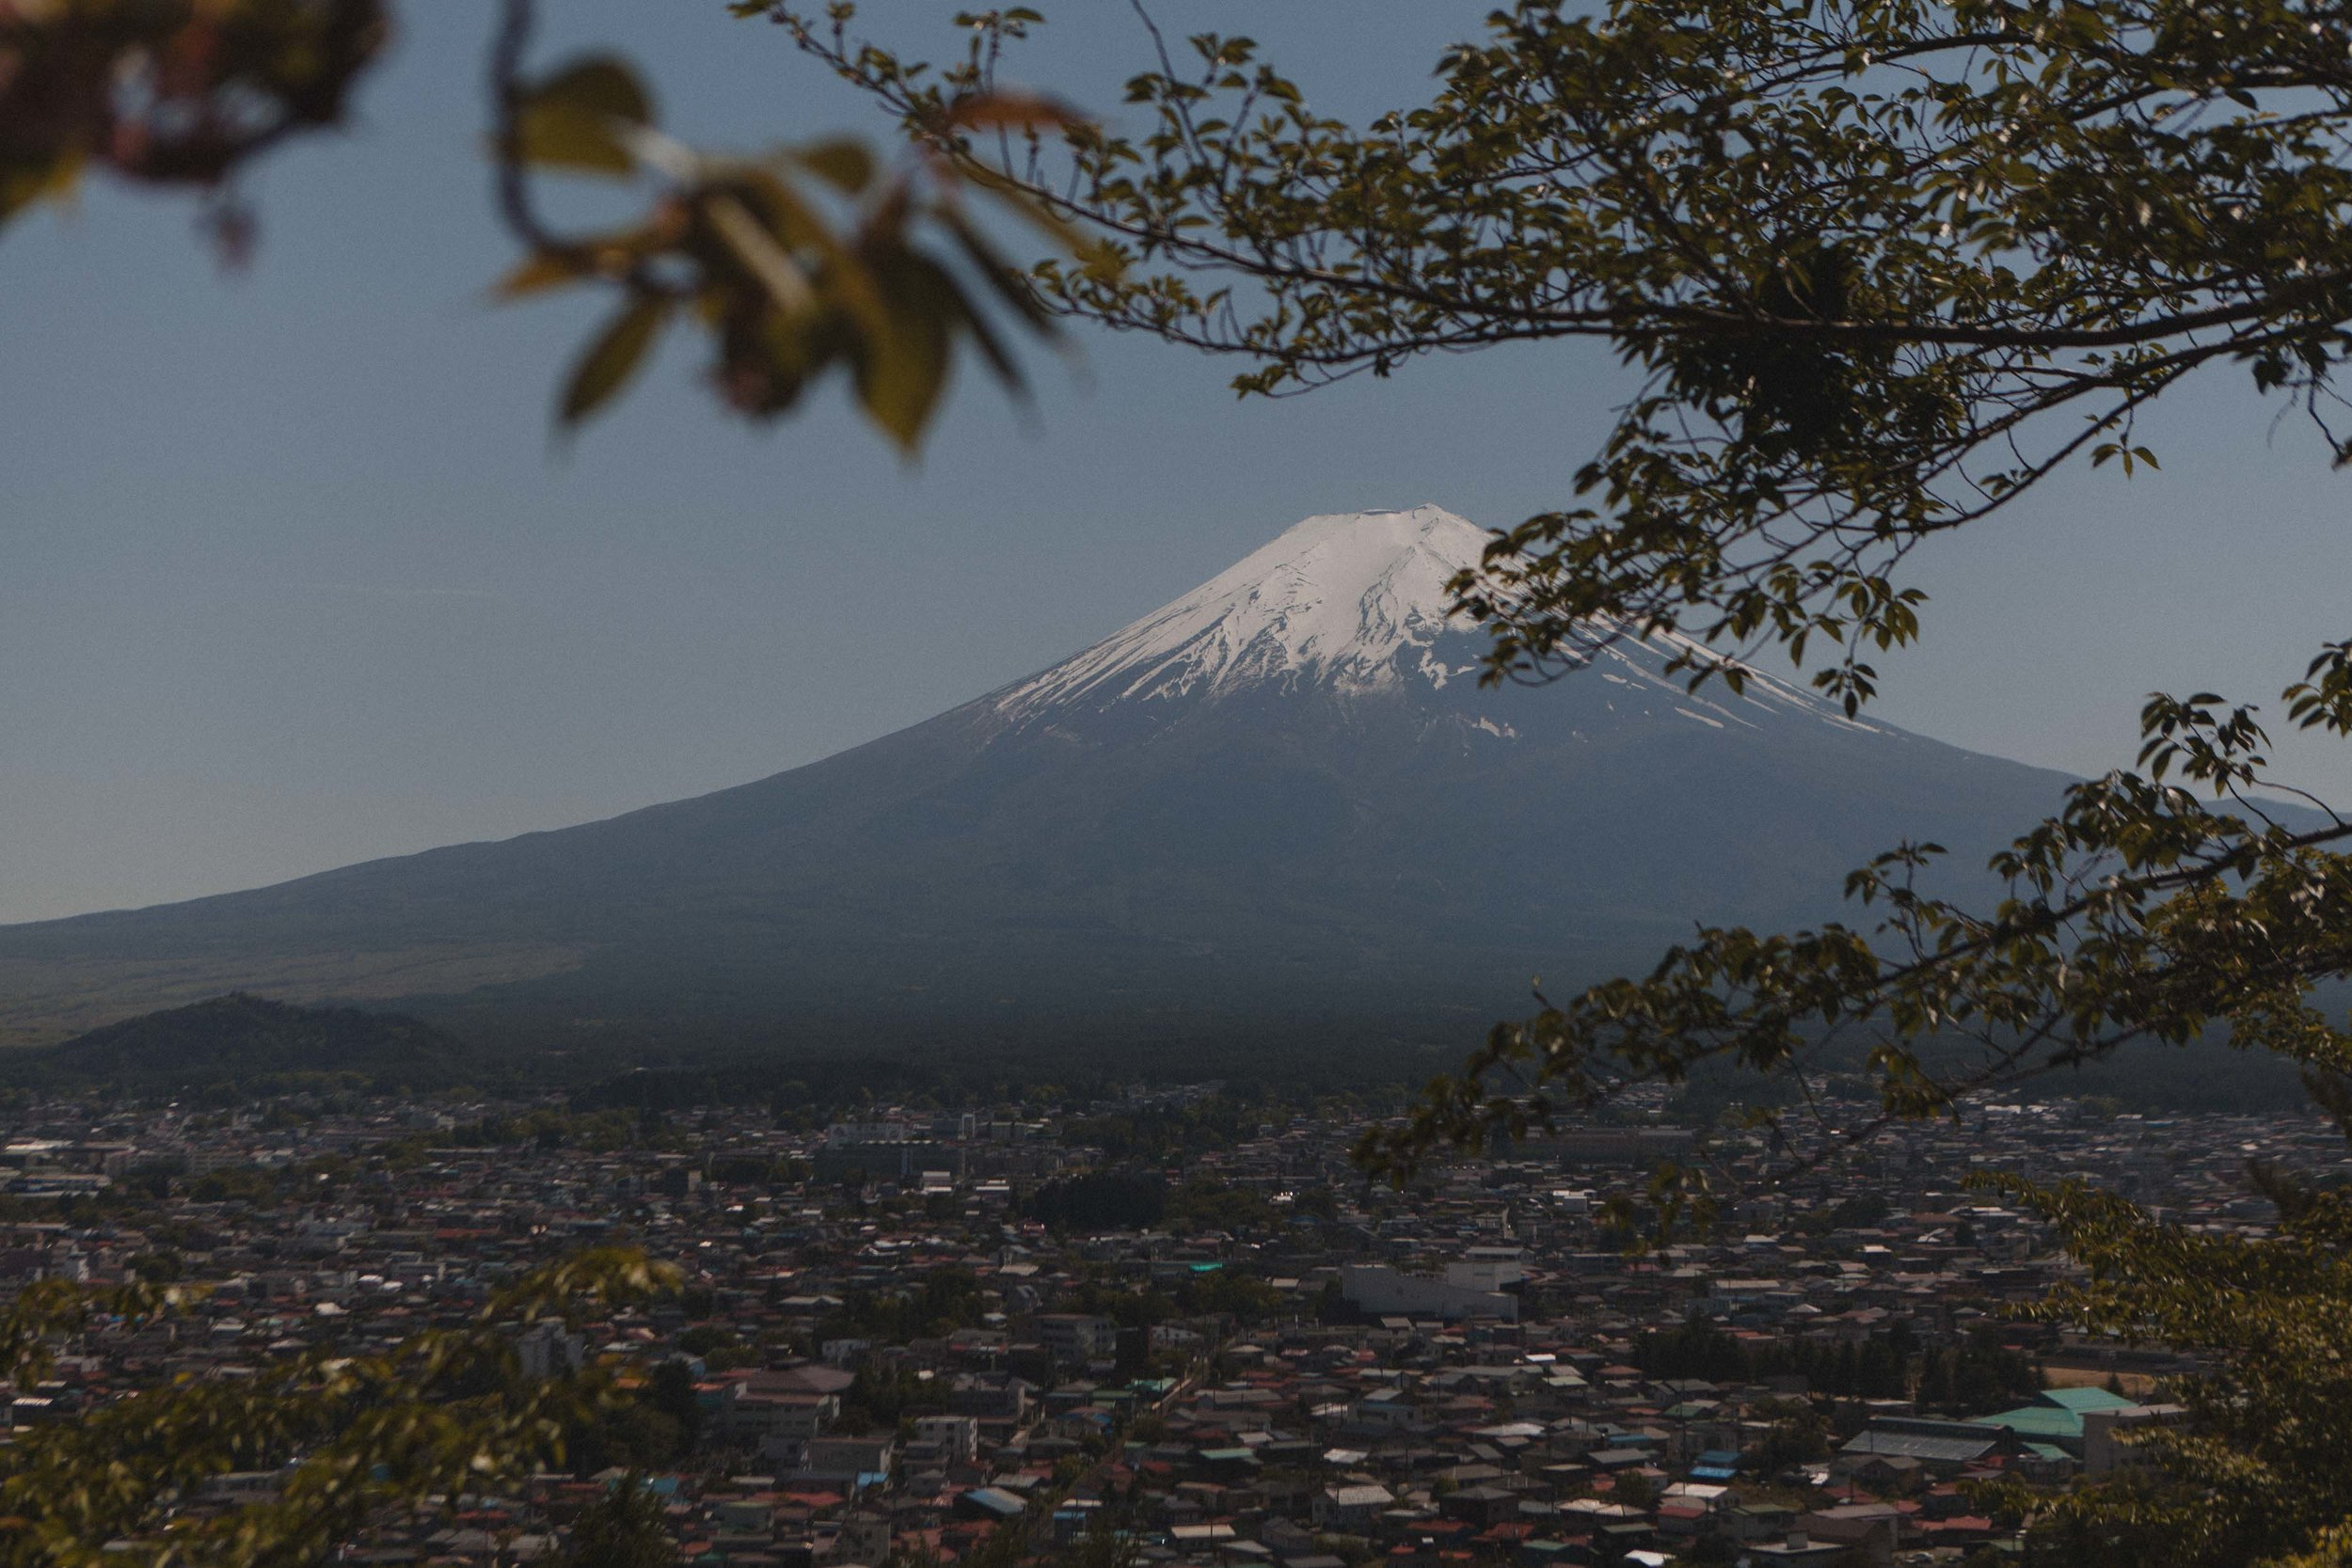 The view of Mt. Fuji from Chureito Pagoda